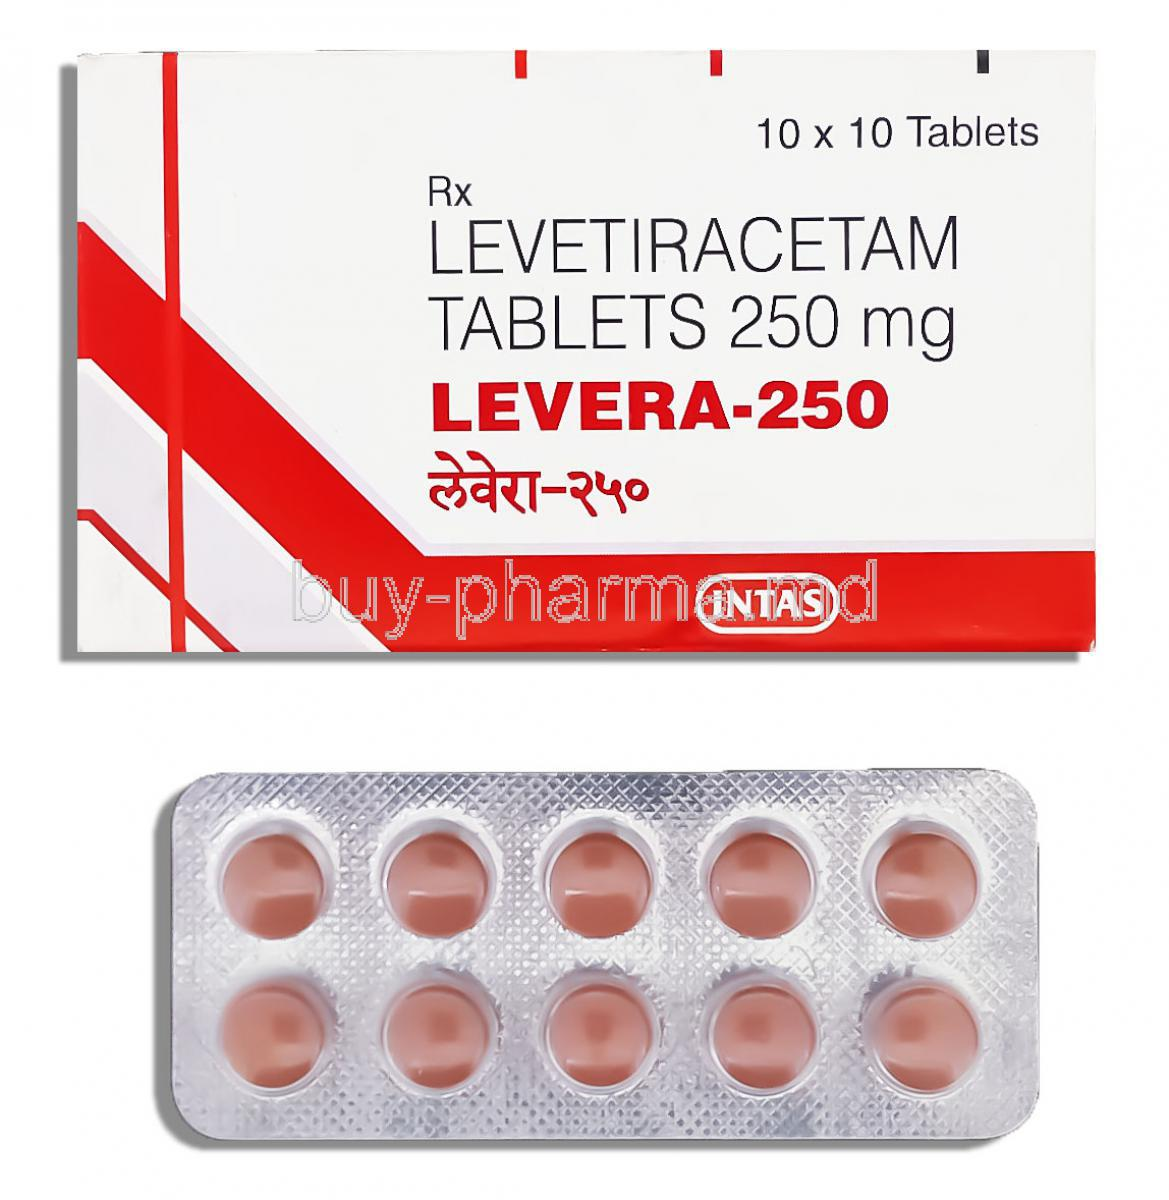 Does ivermectin kill crusted scabies